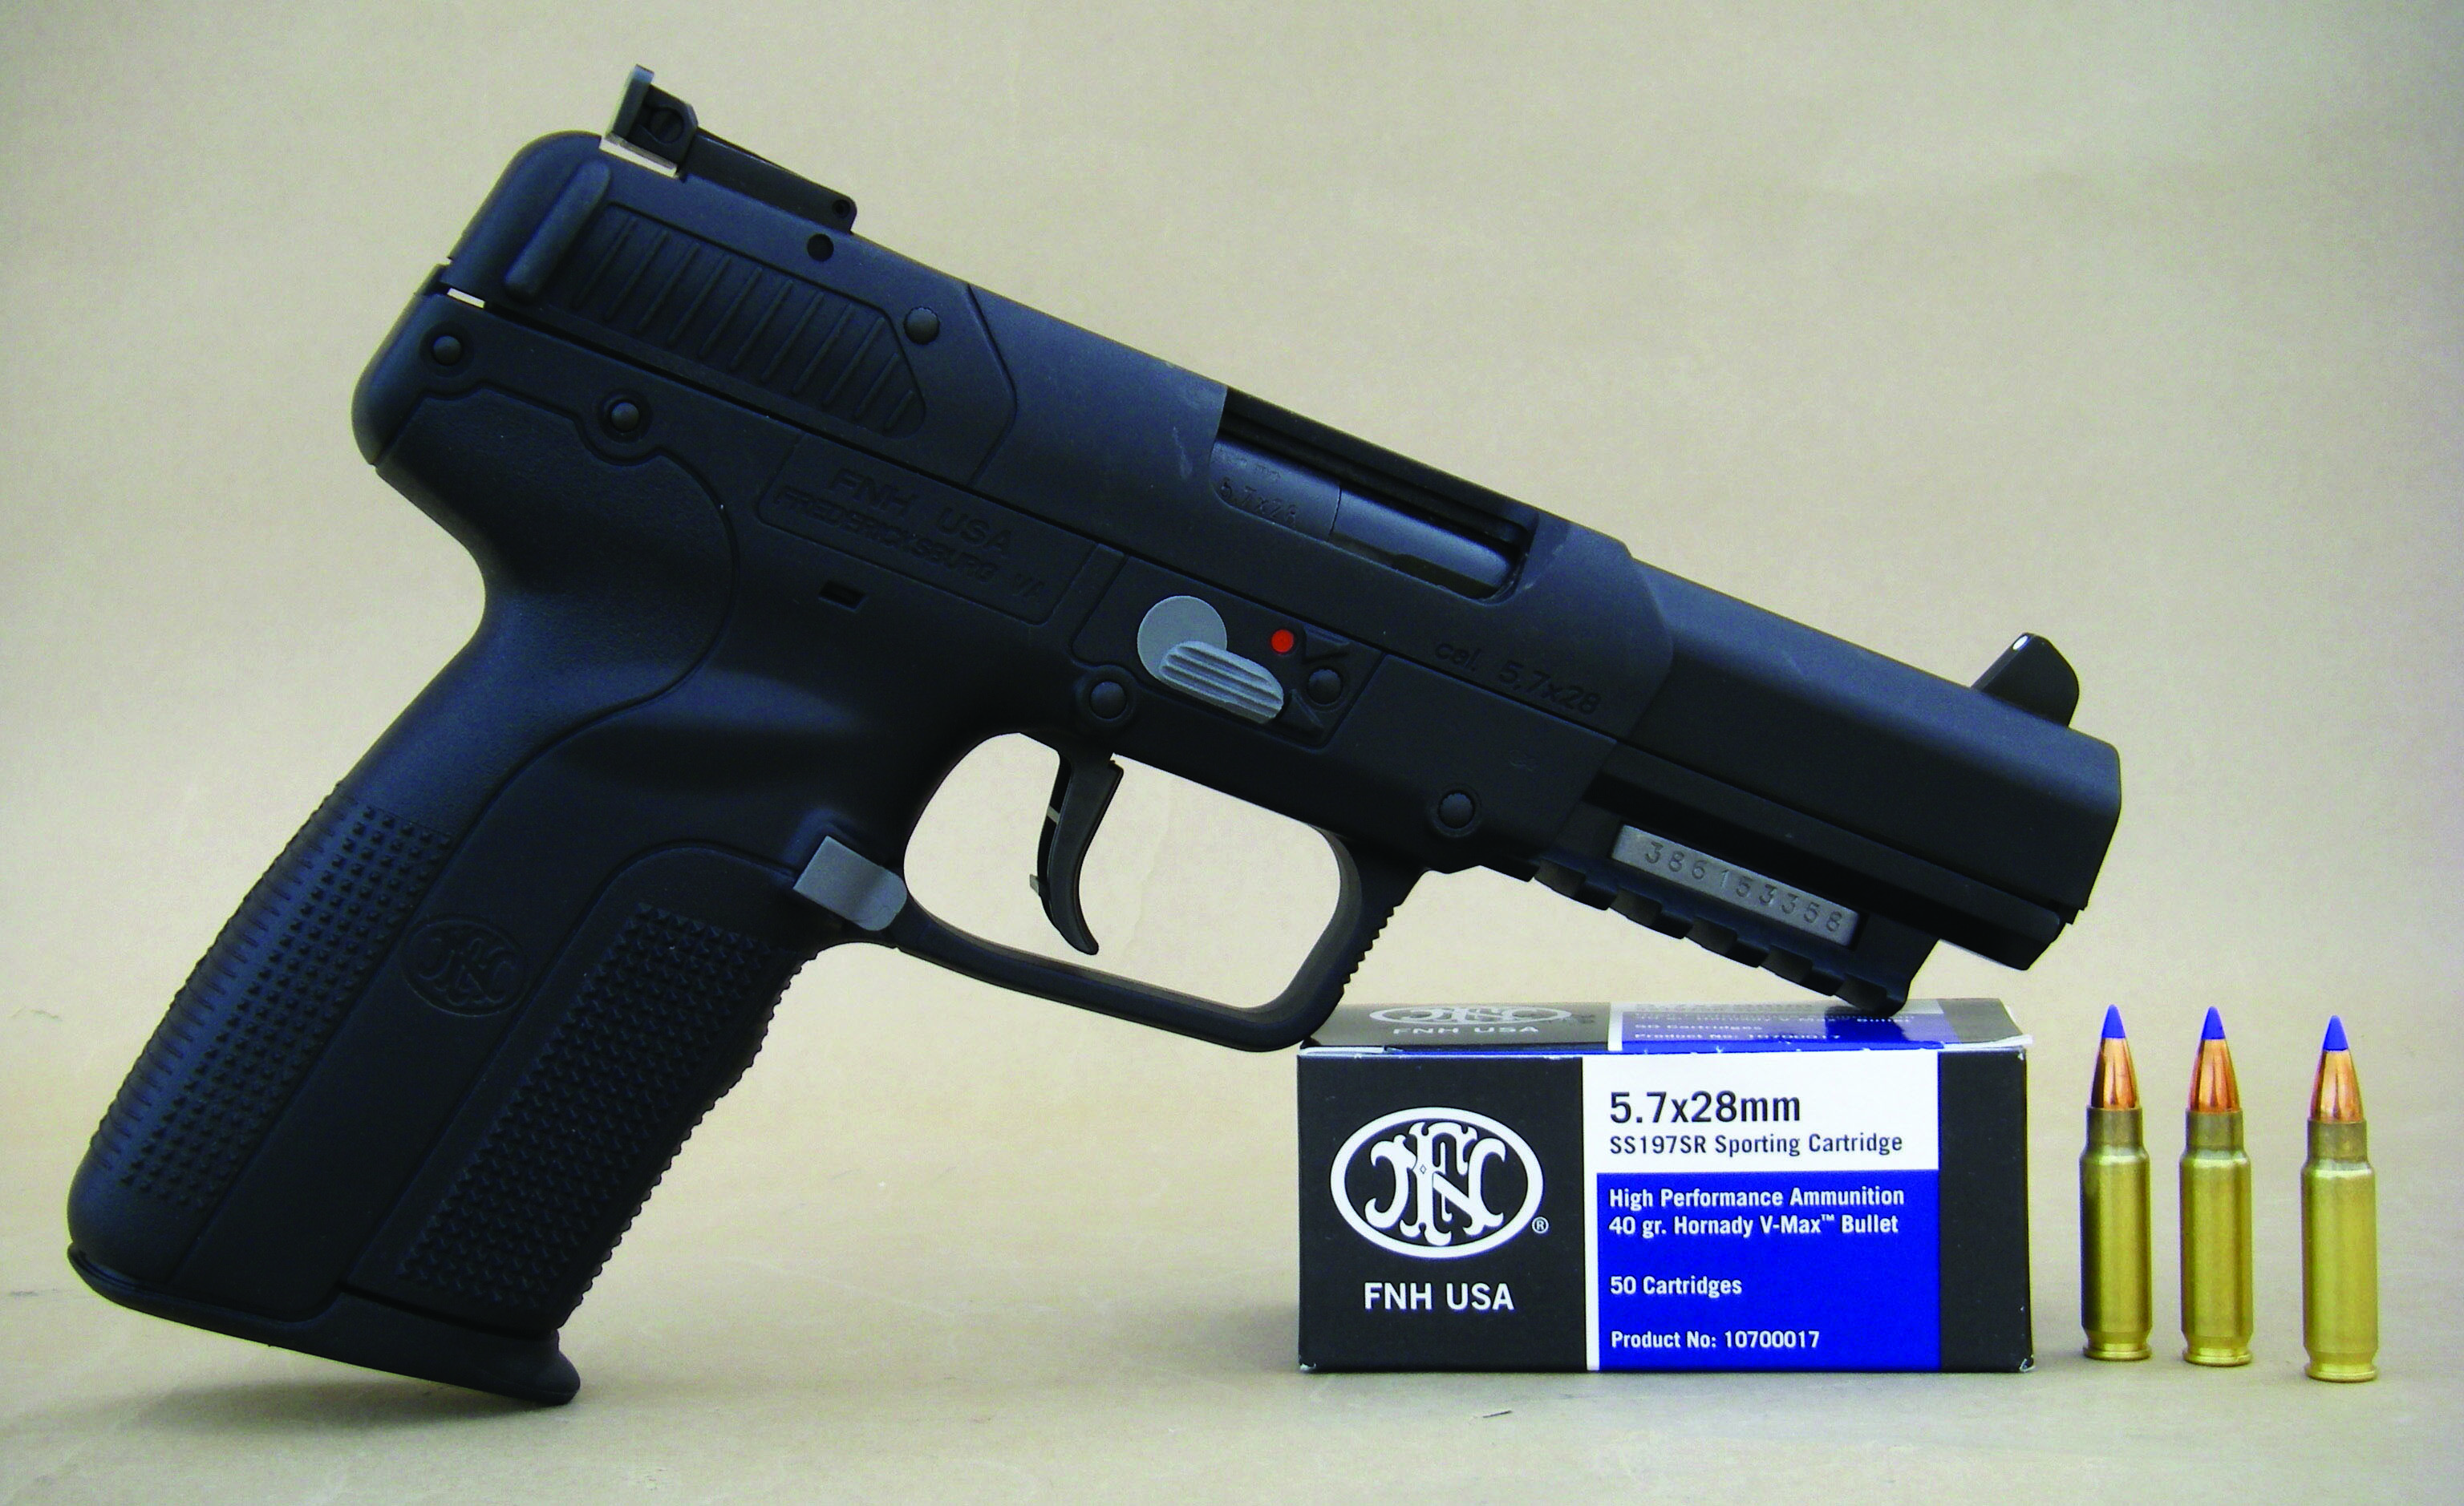 The 5.7x28mm cartridge is housed in this FN-manufactured Model Five-Seven USG autoloading pistol.